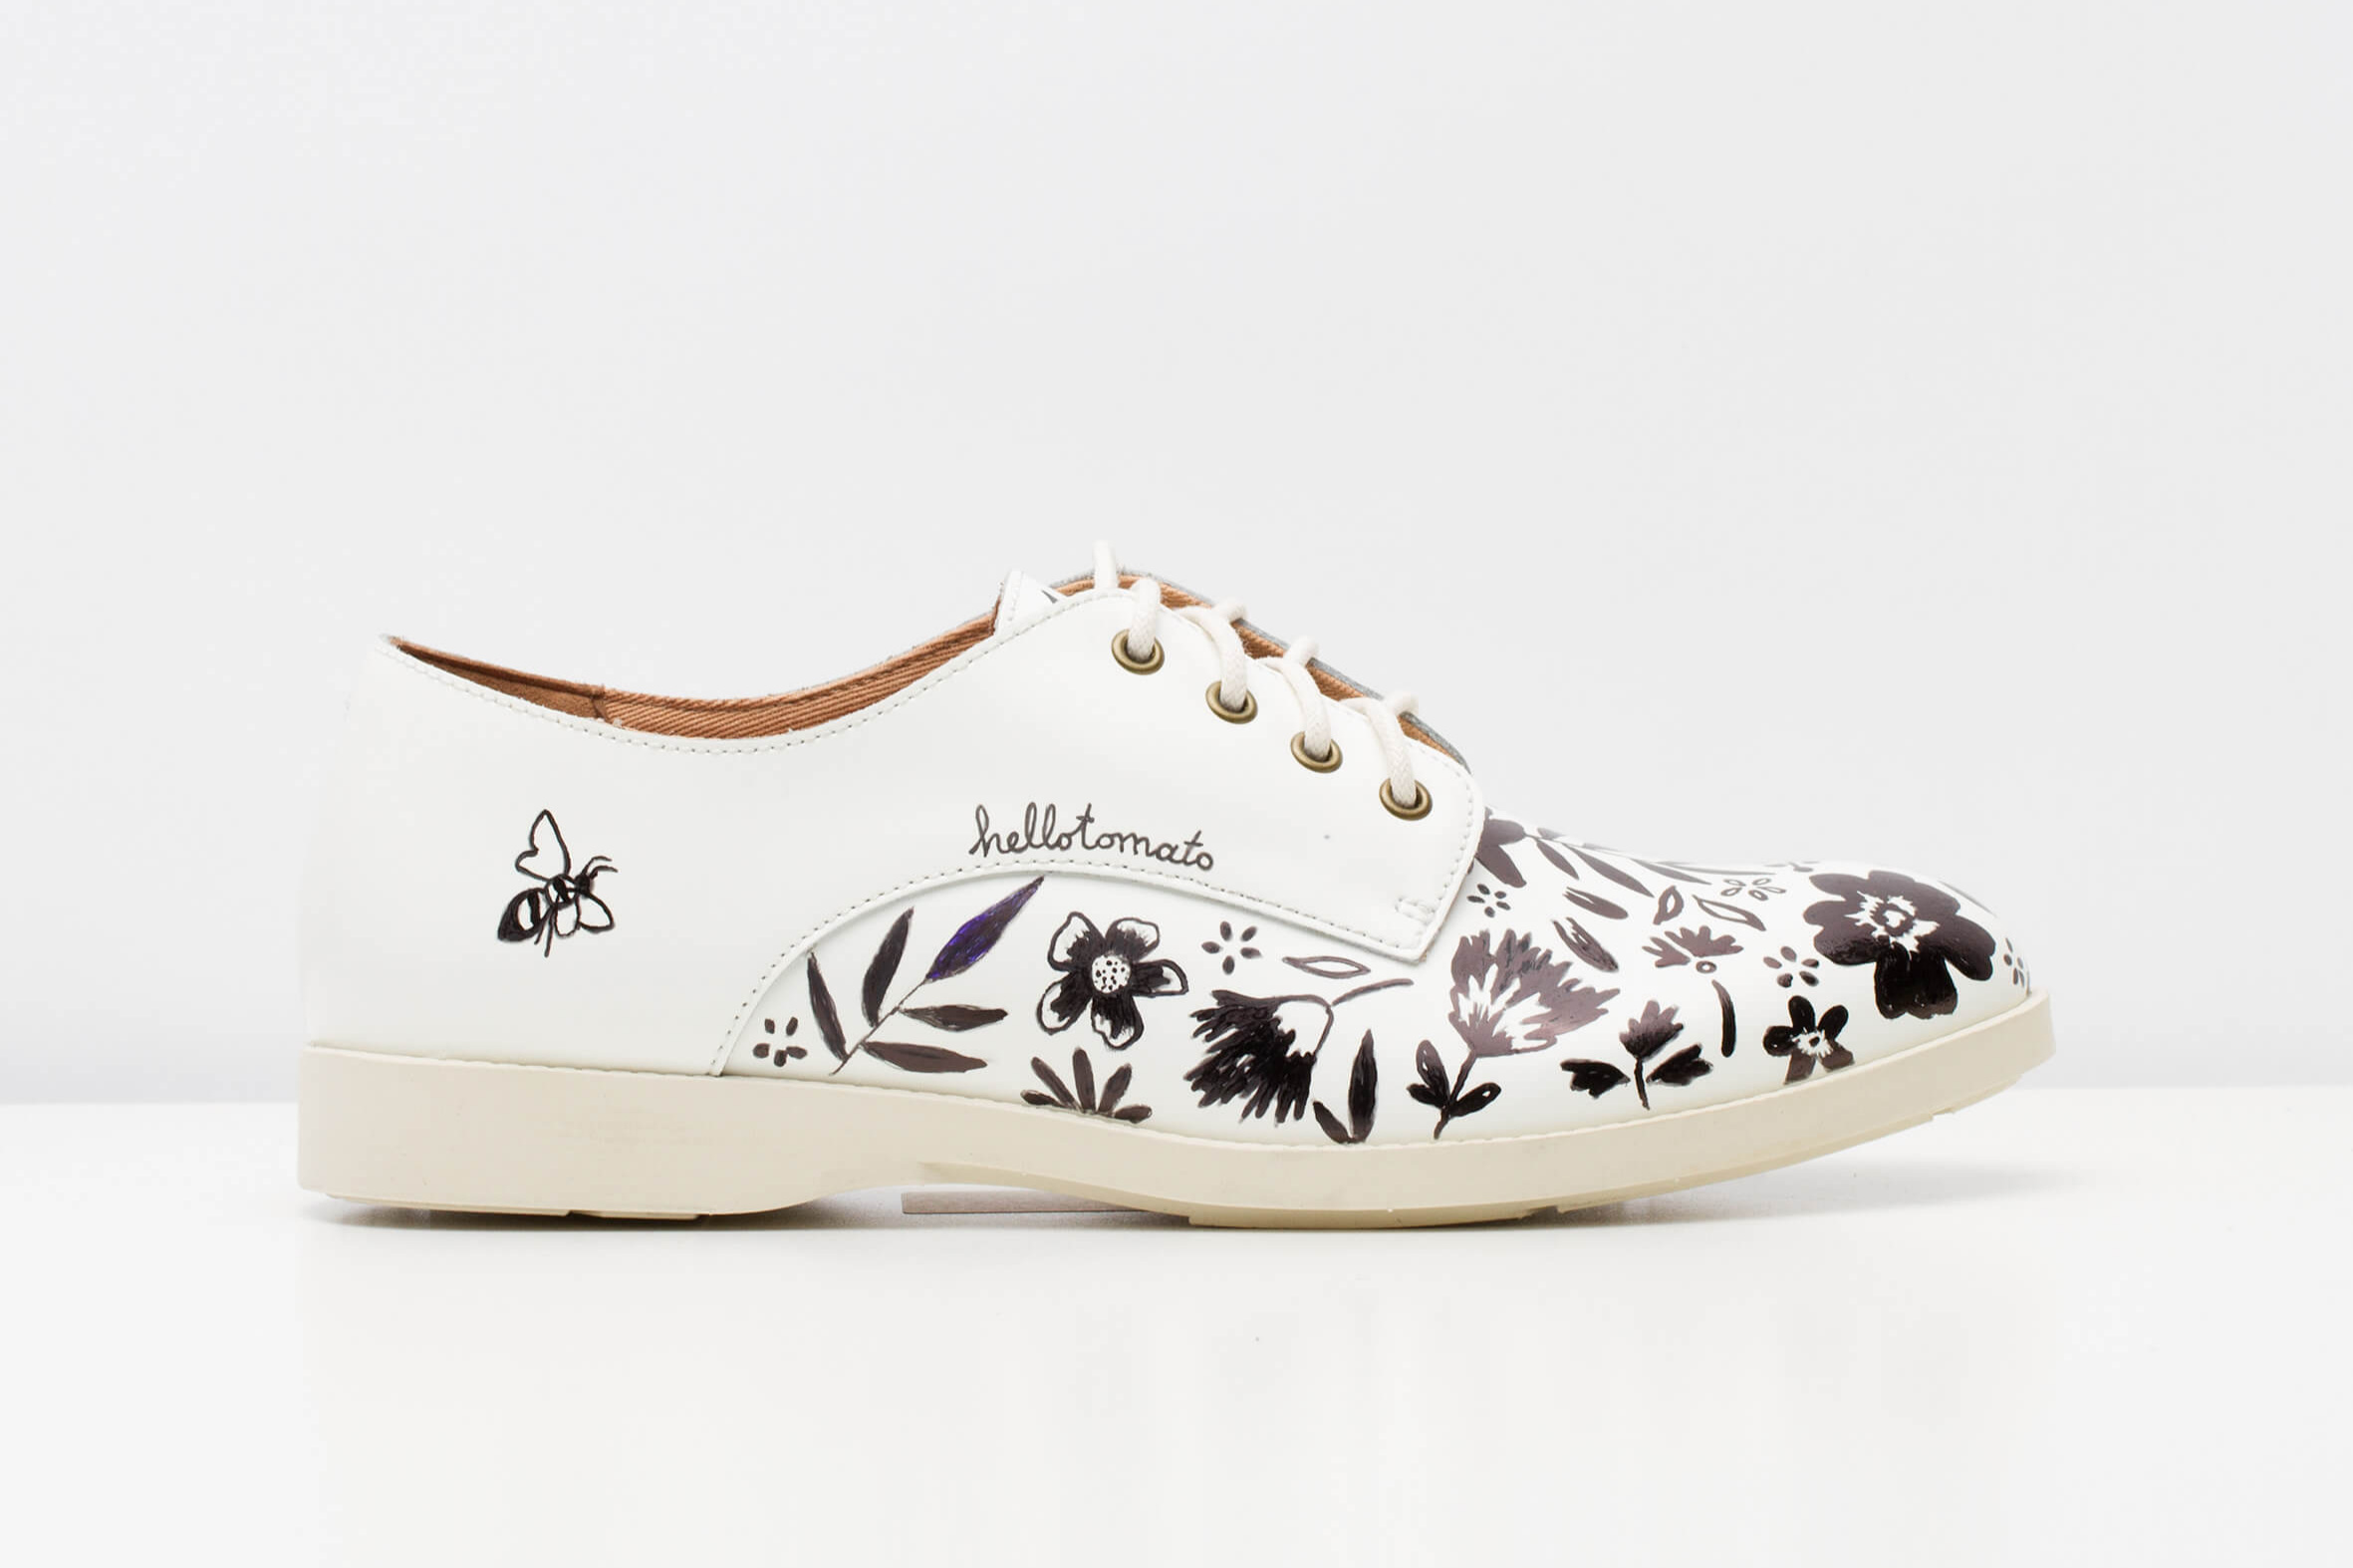 Rollie Nation floral illustrated Shoe Design